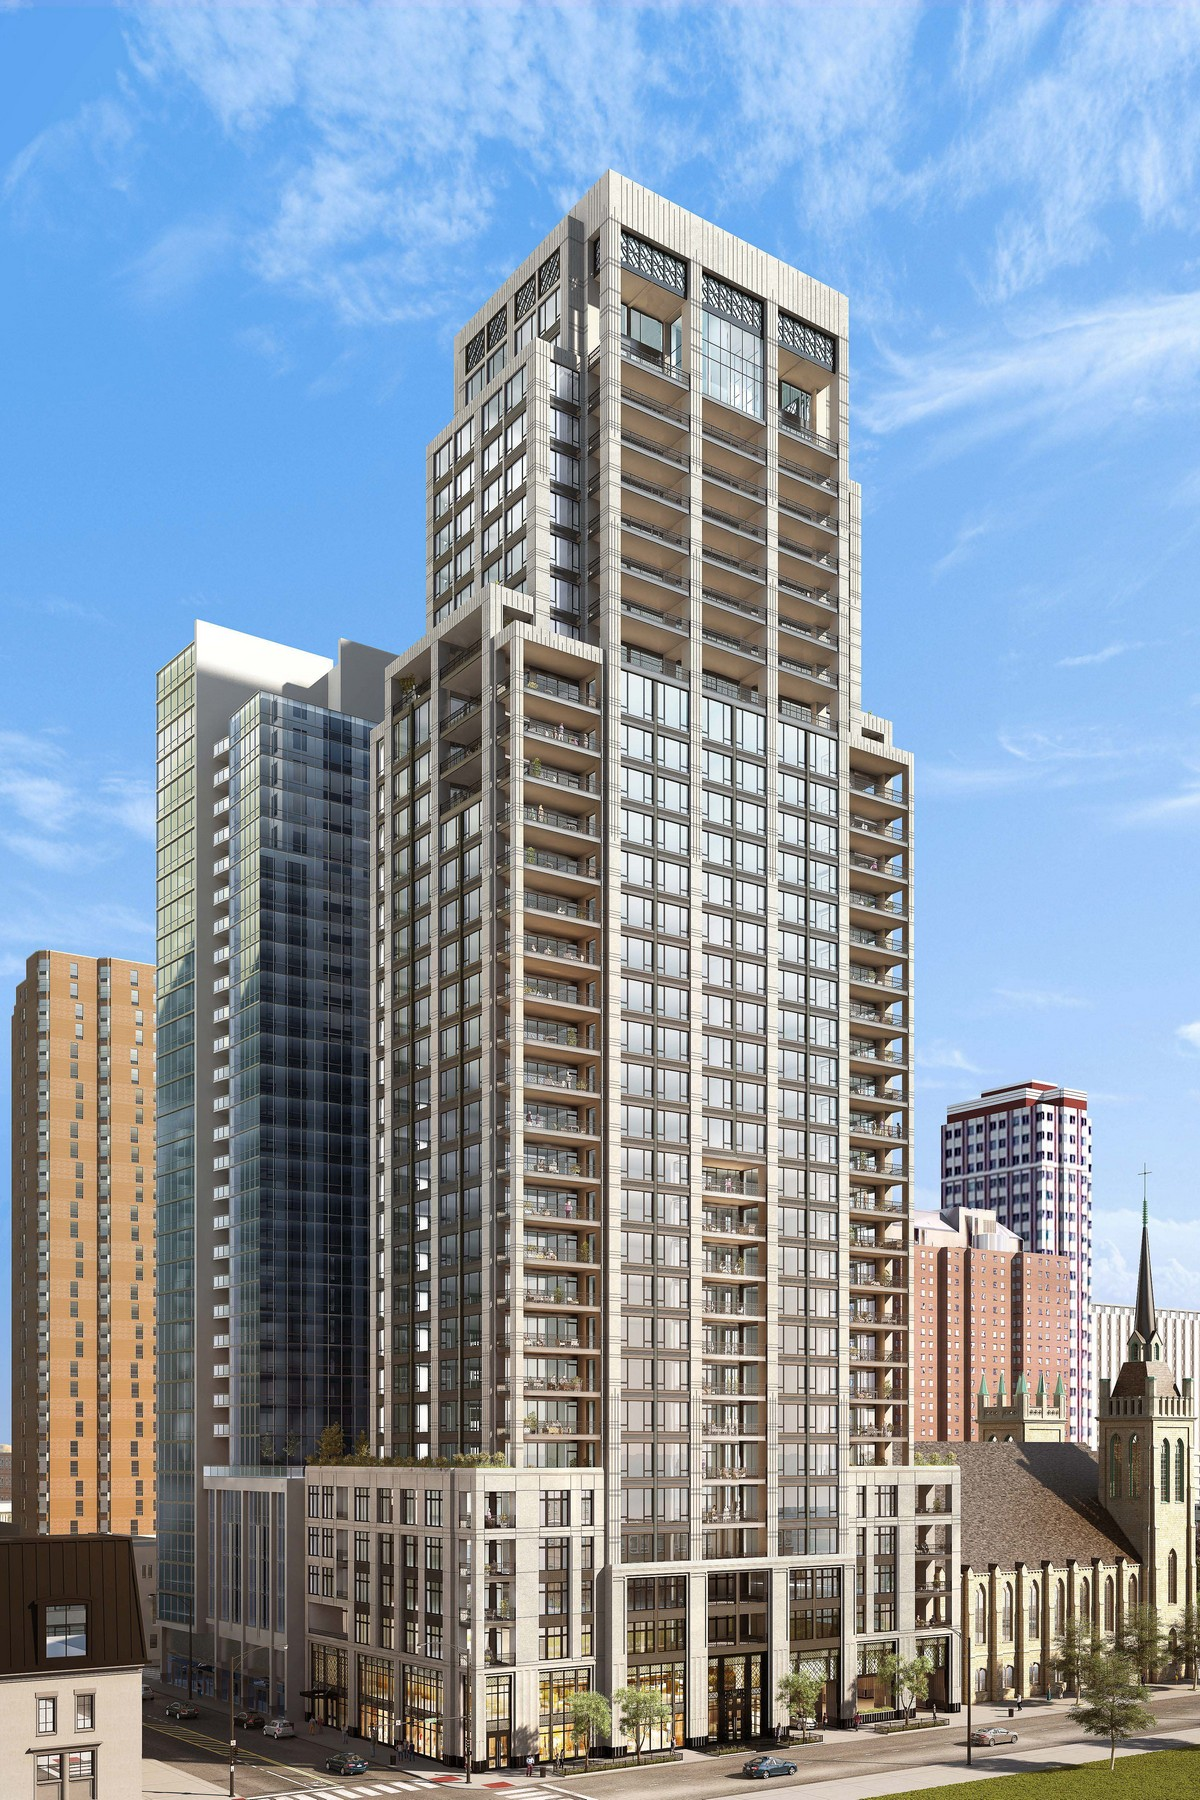 Condominium for Sale at No. 9 Walton 9 W Walton Street Unit 602 Near North Side, Chicago, Illinois, 60610 United States